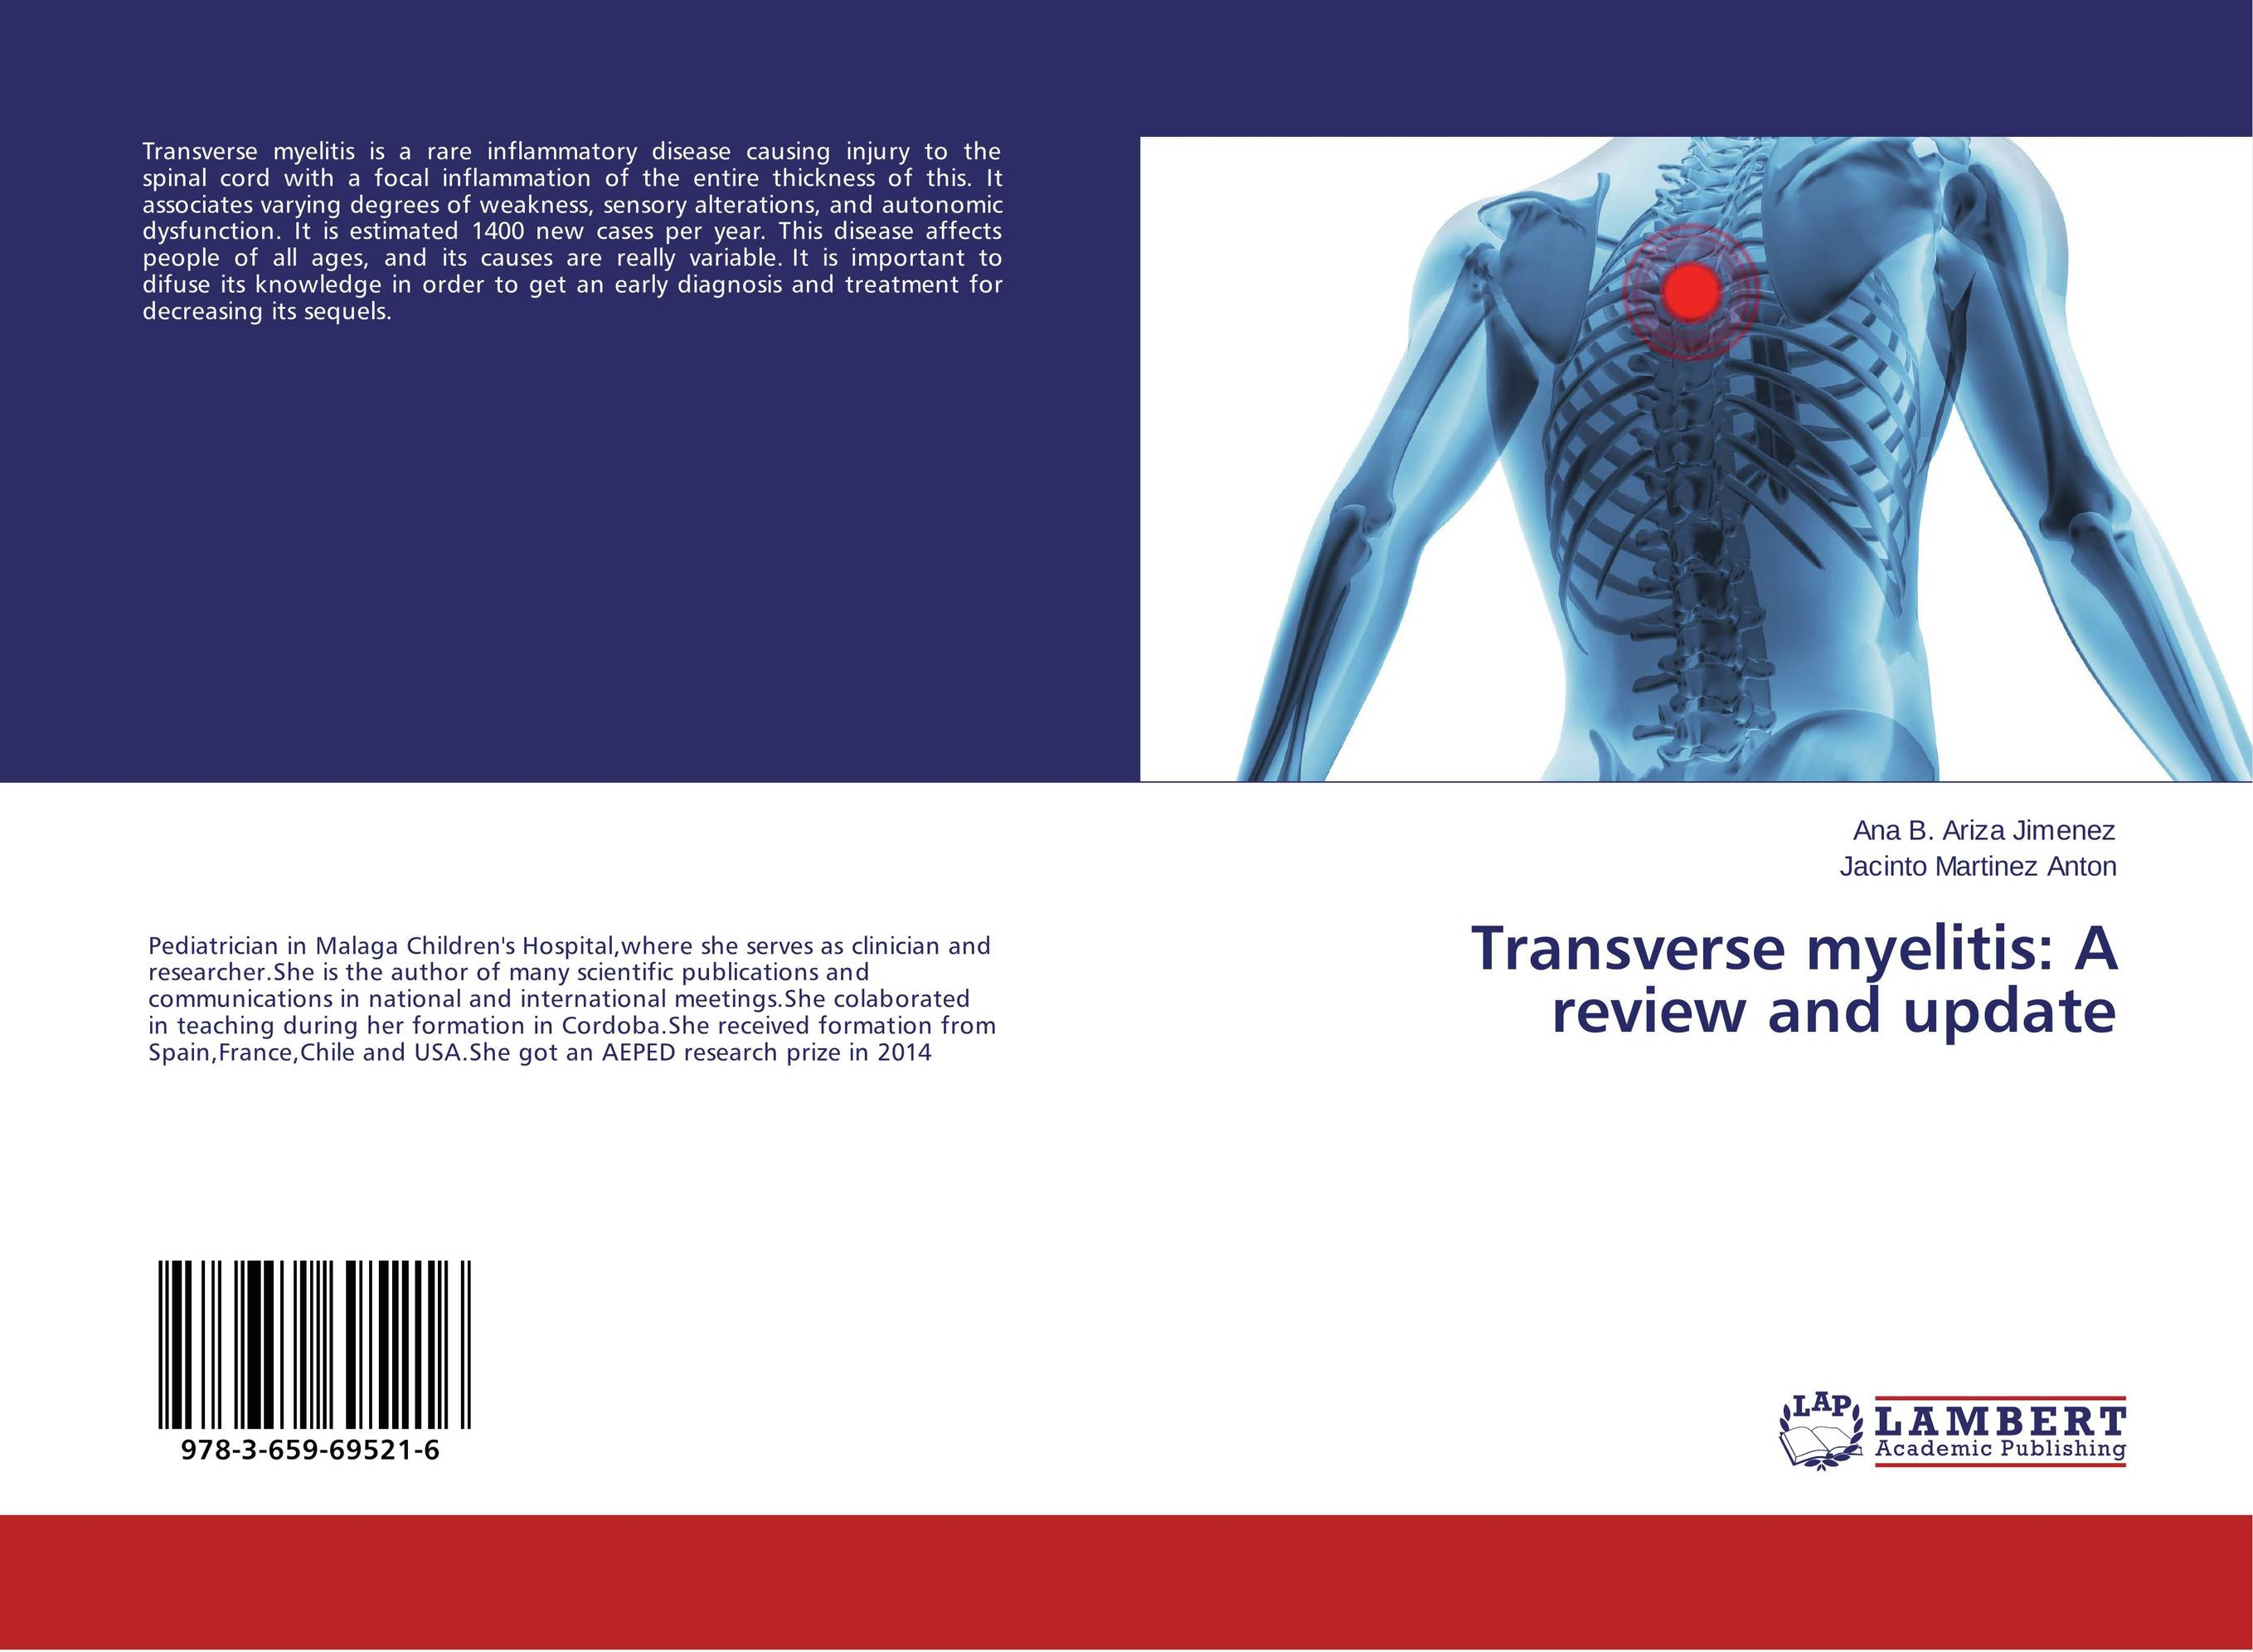 Transverse myelitis: A review and update